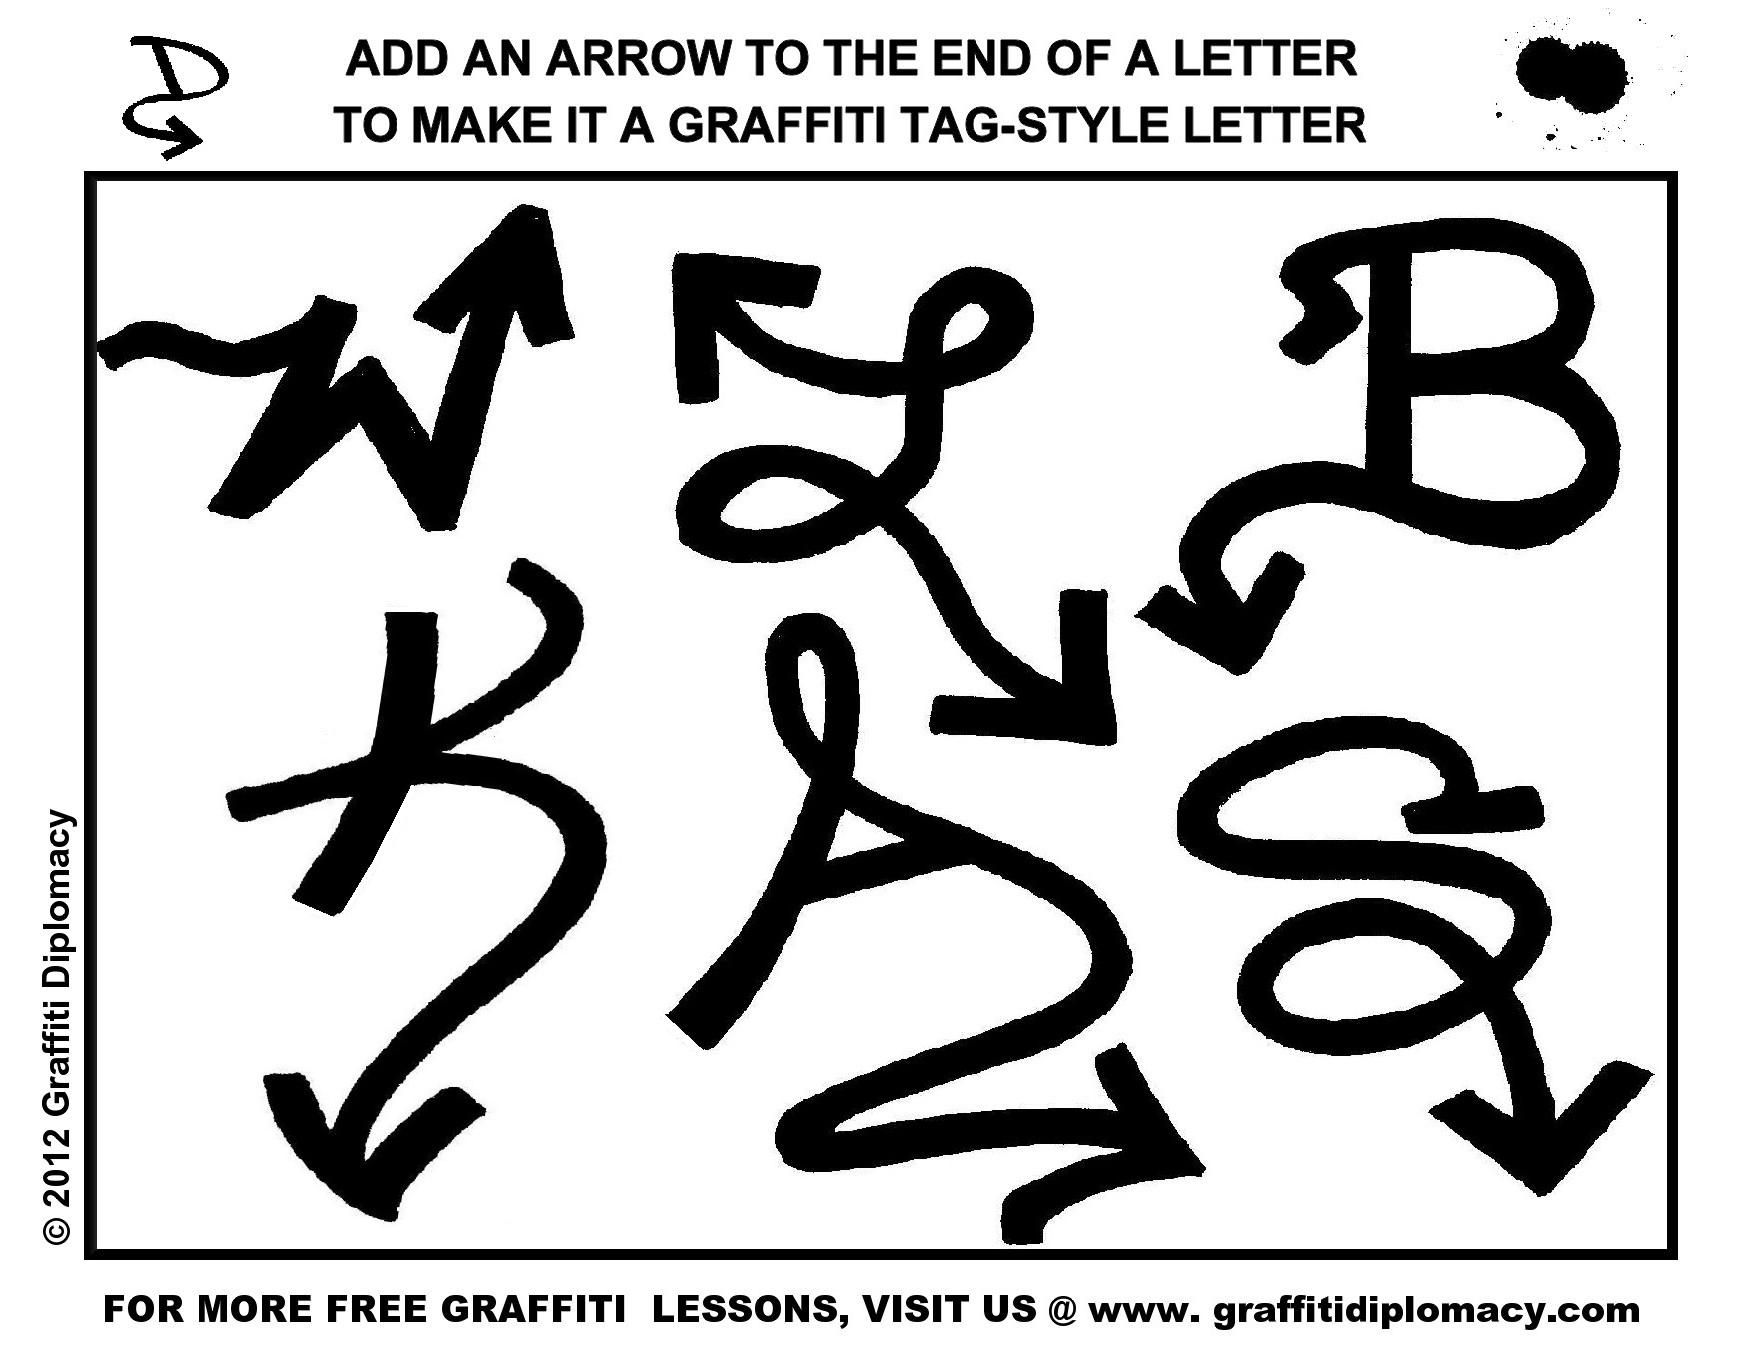 Learn How To Draw Graffiti Arrows